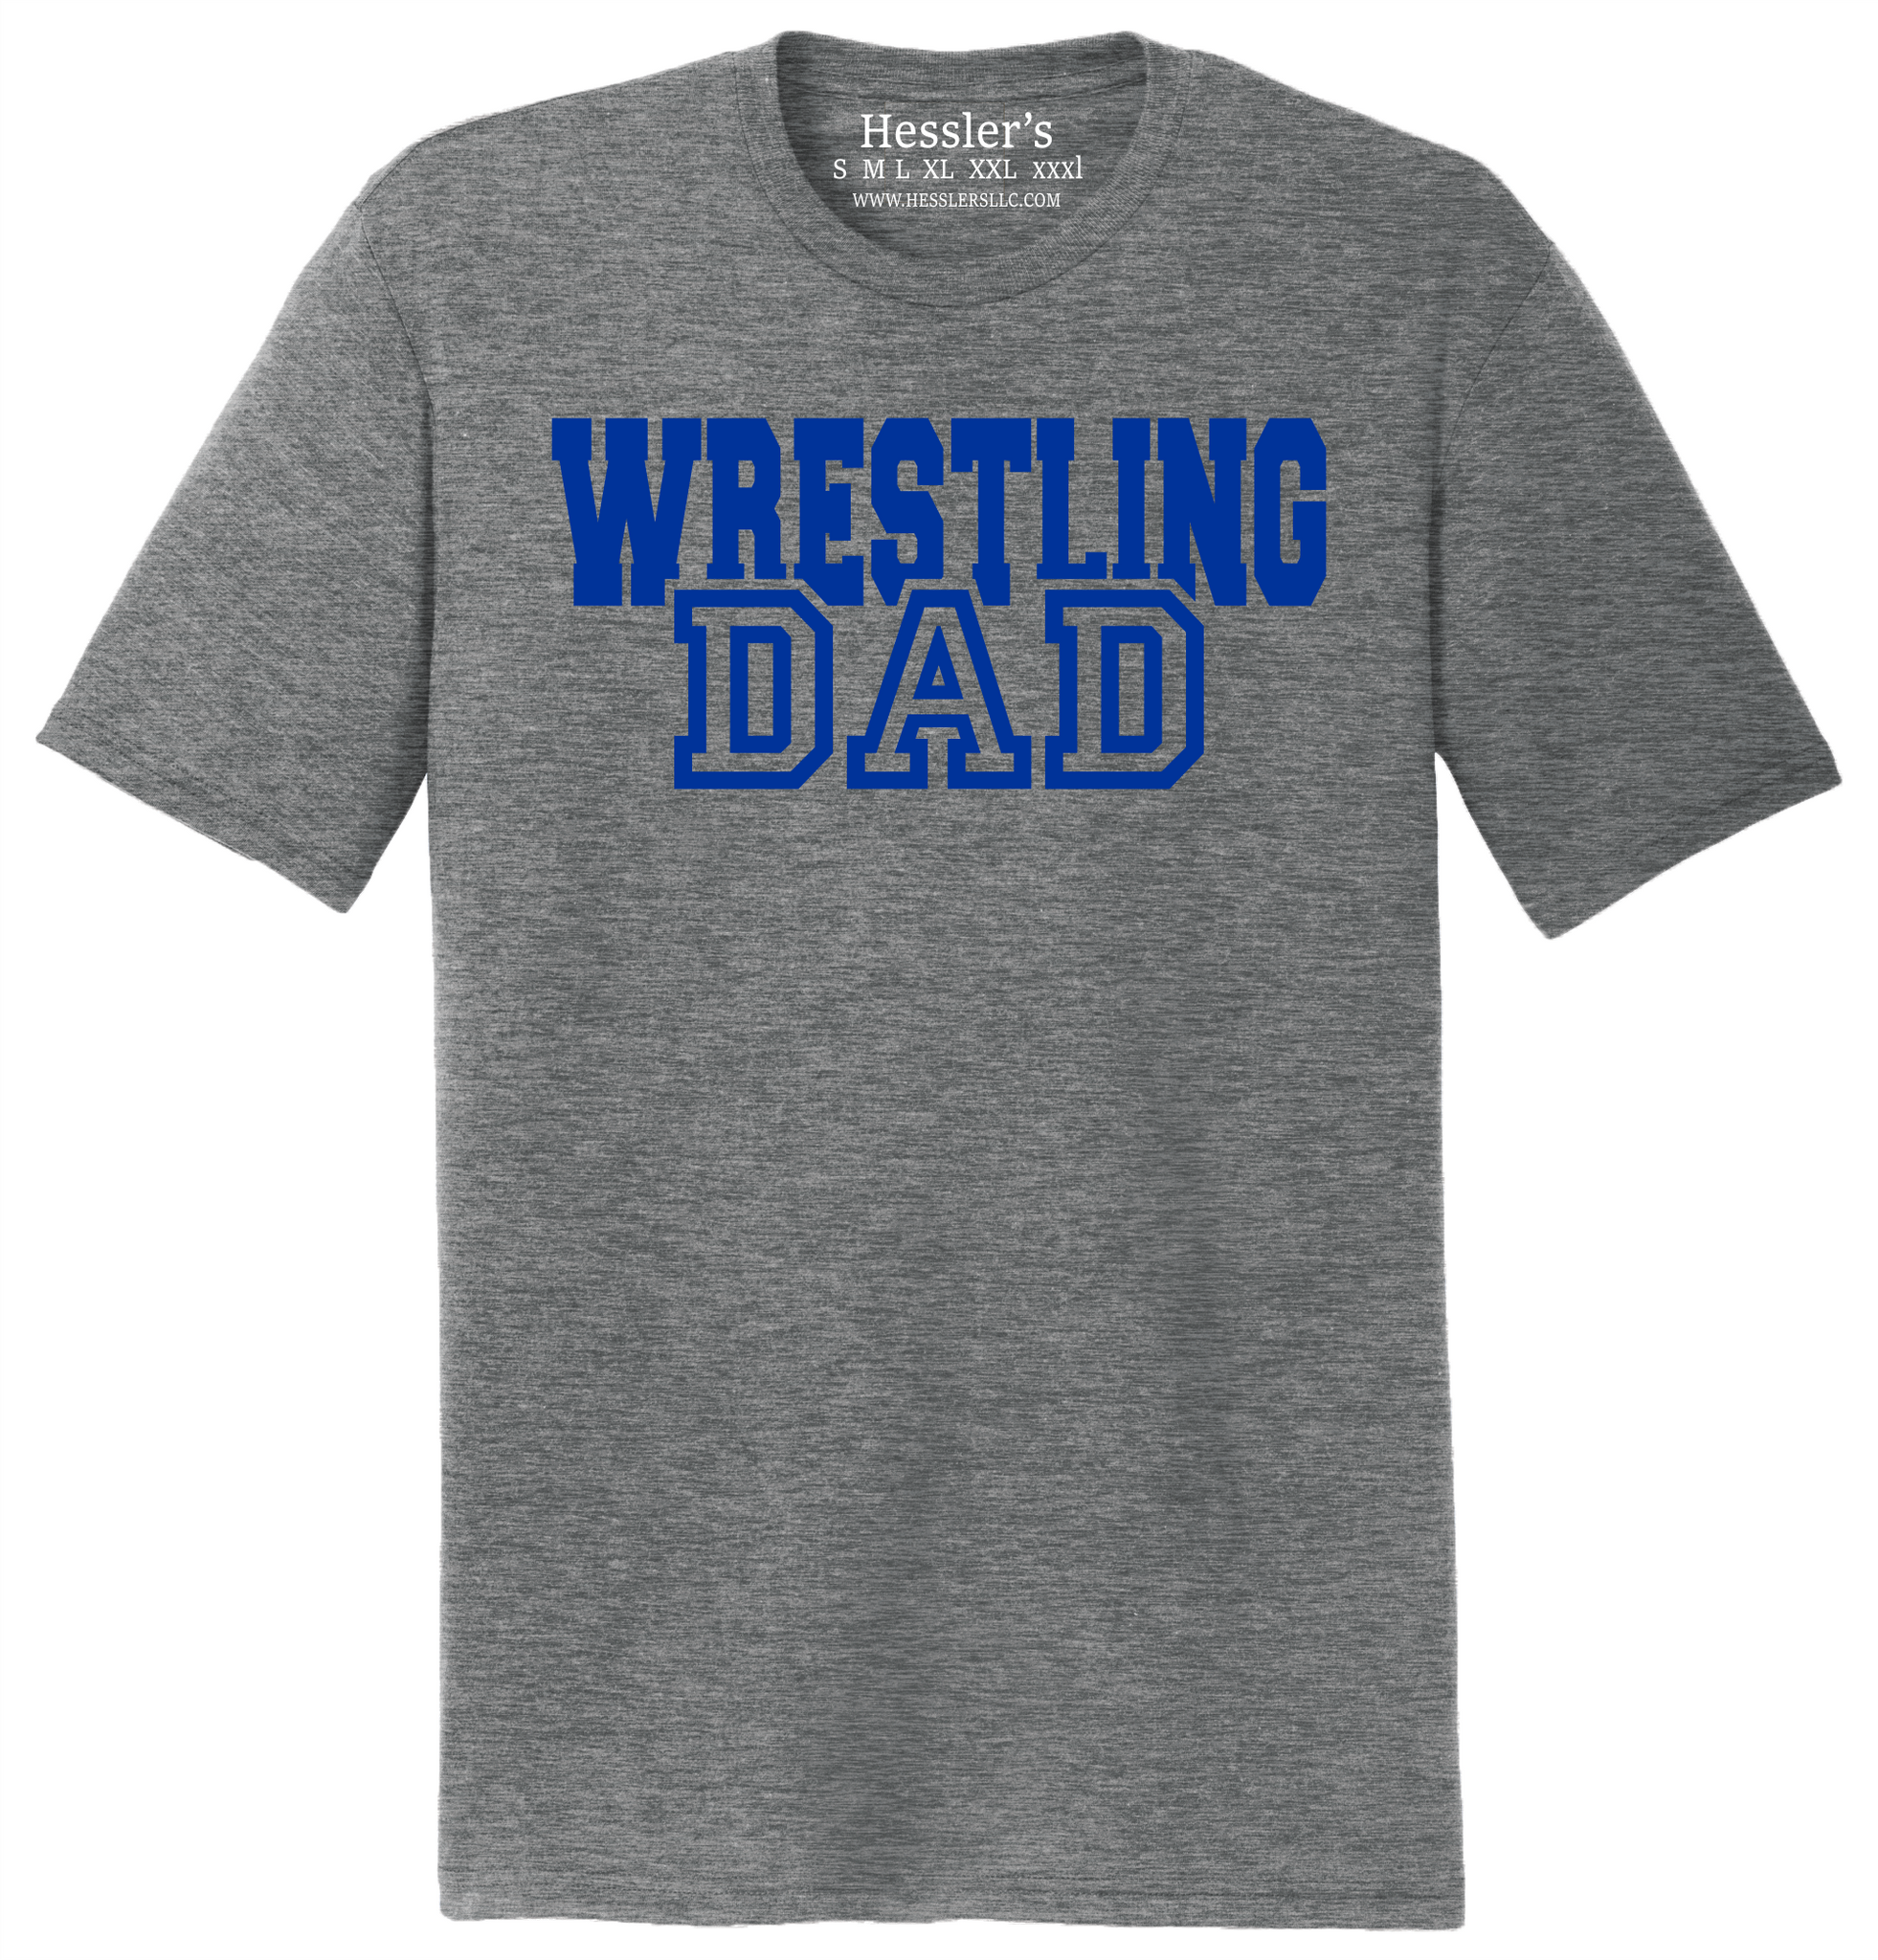 Wrestling Dad Soft T